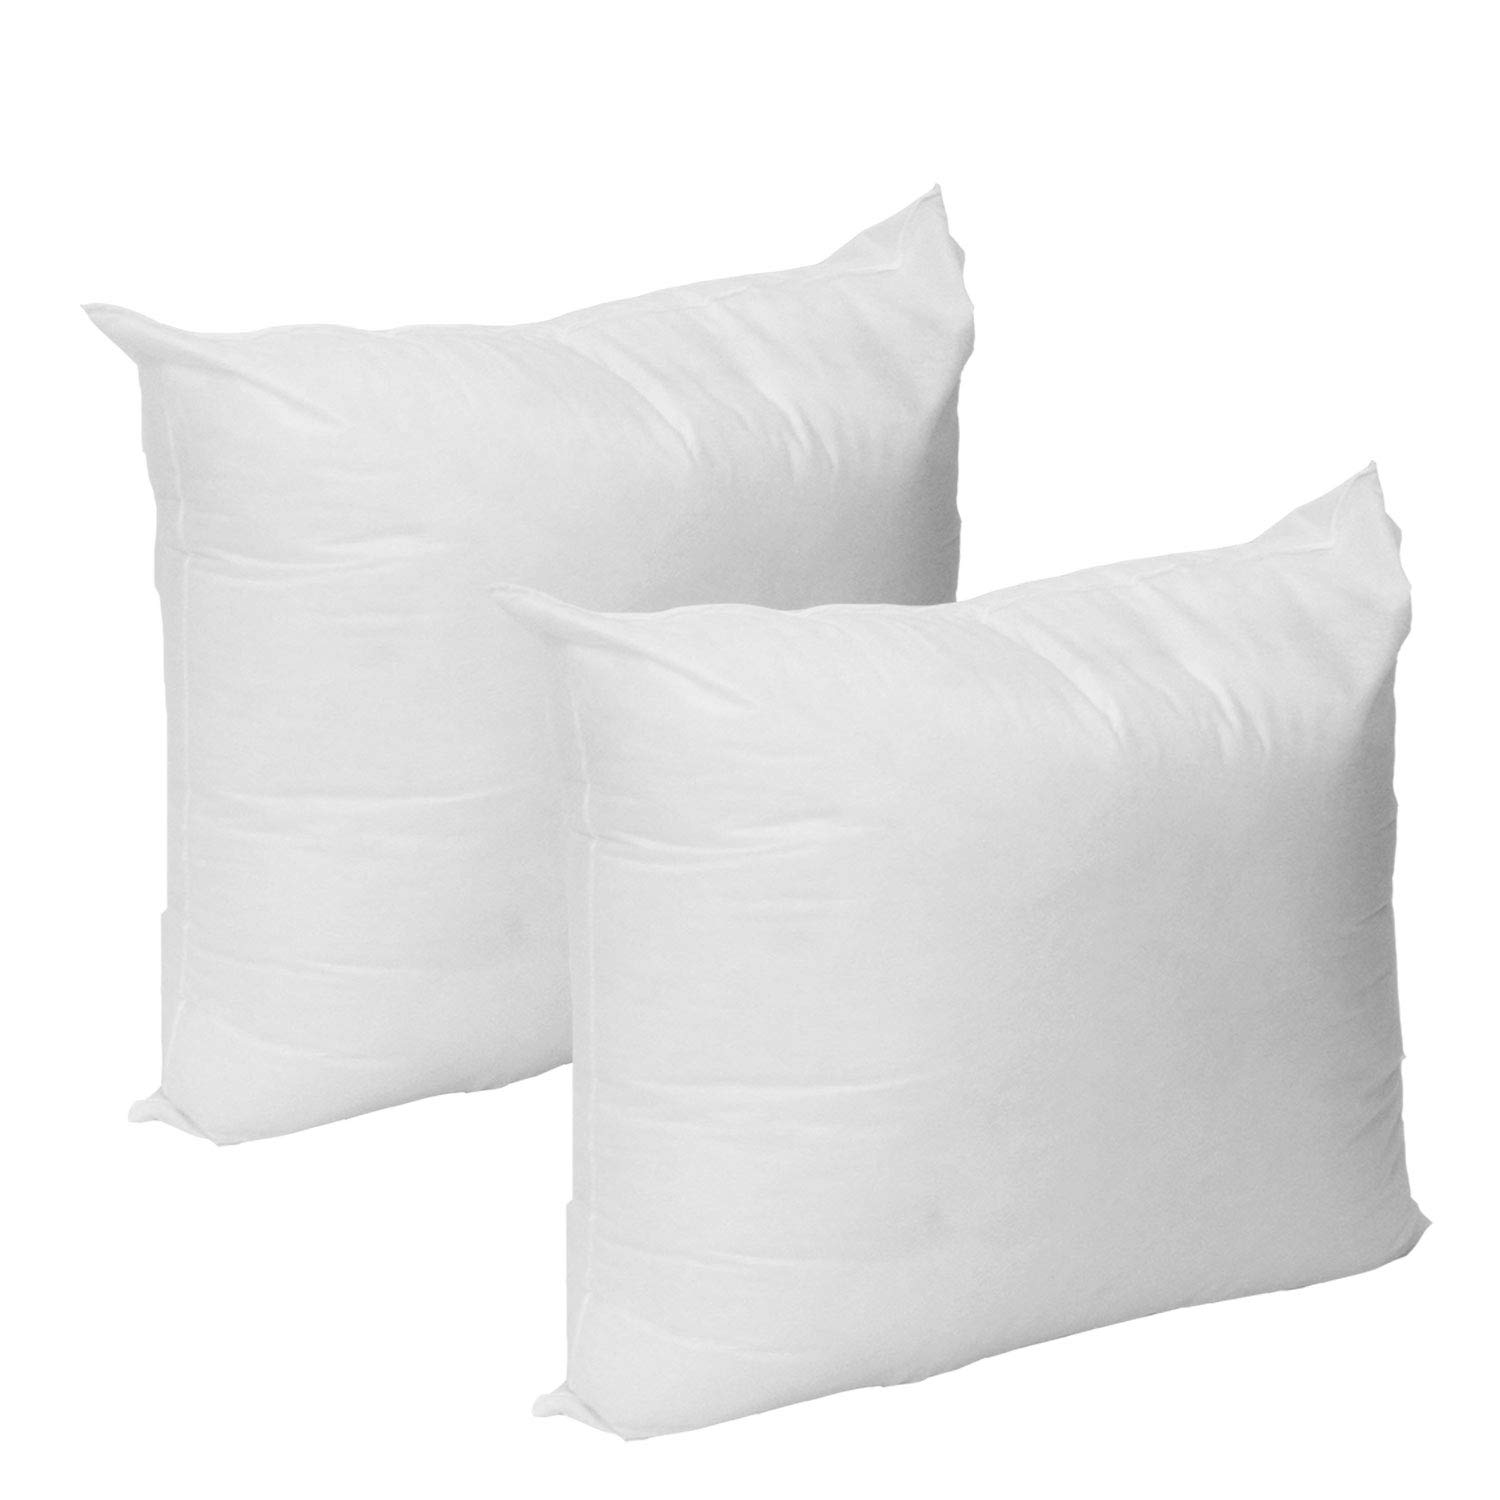 Mybecca Set of 2-12 x 12 Premium Hypoallergenic Stuffer pillow Insert Sham Square Form Polyester, Standard/White - MADE IN USA 2017-2080